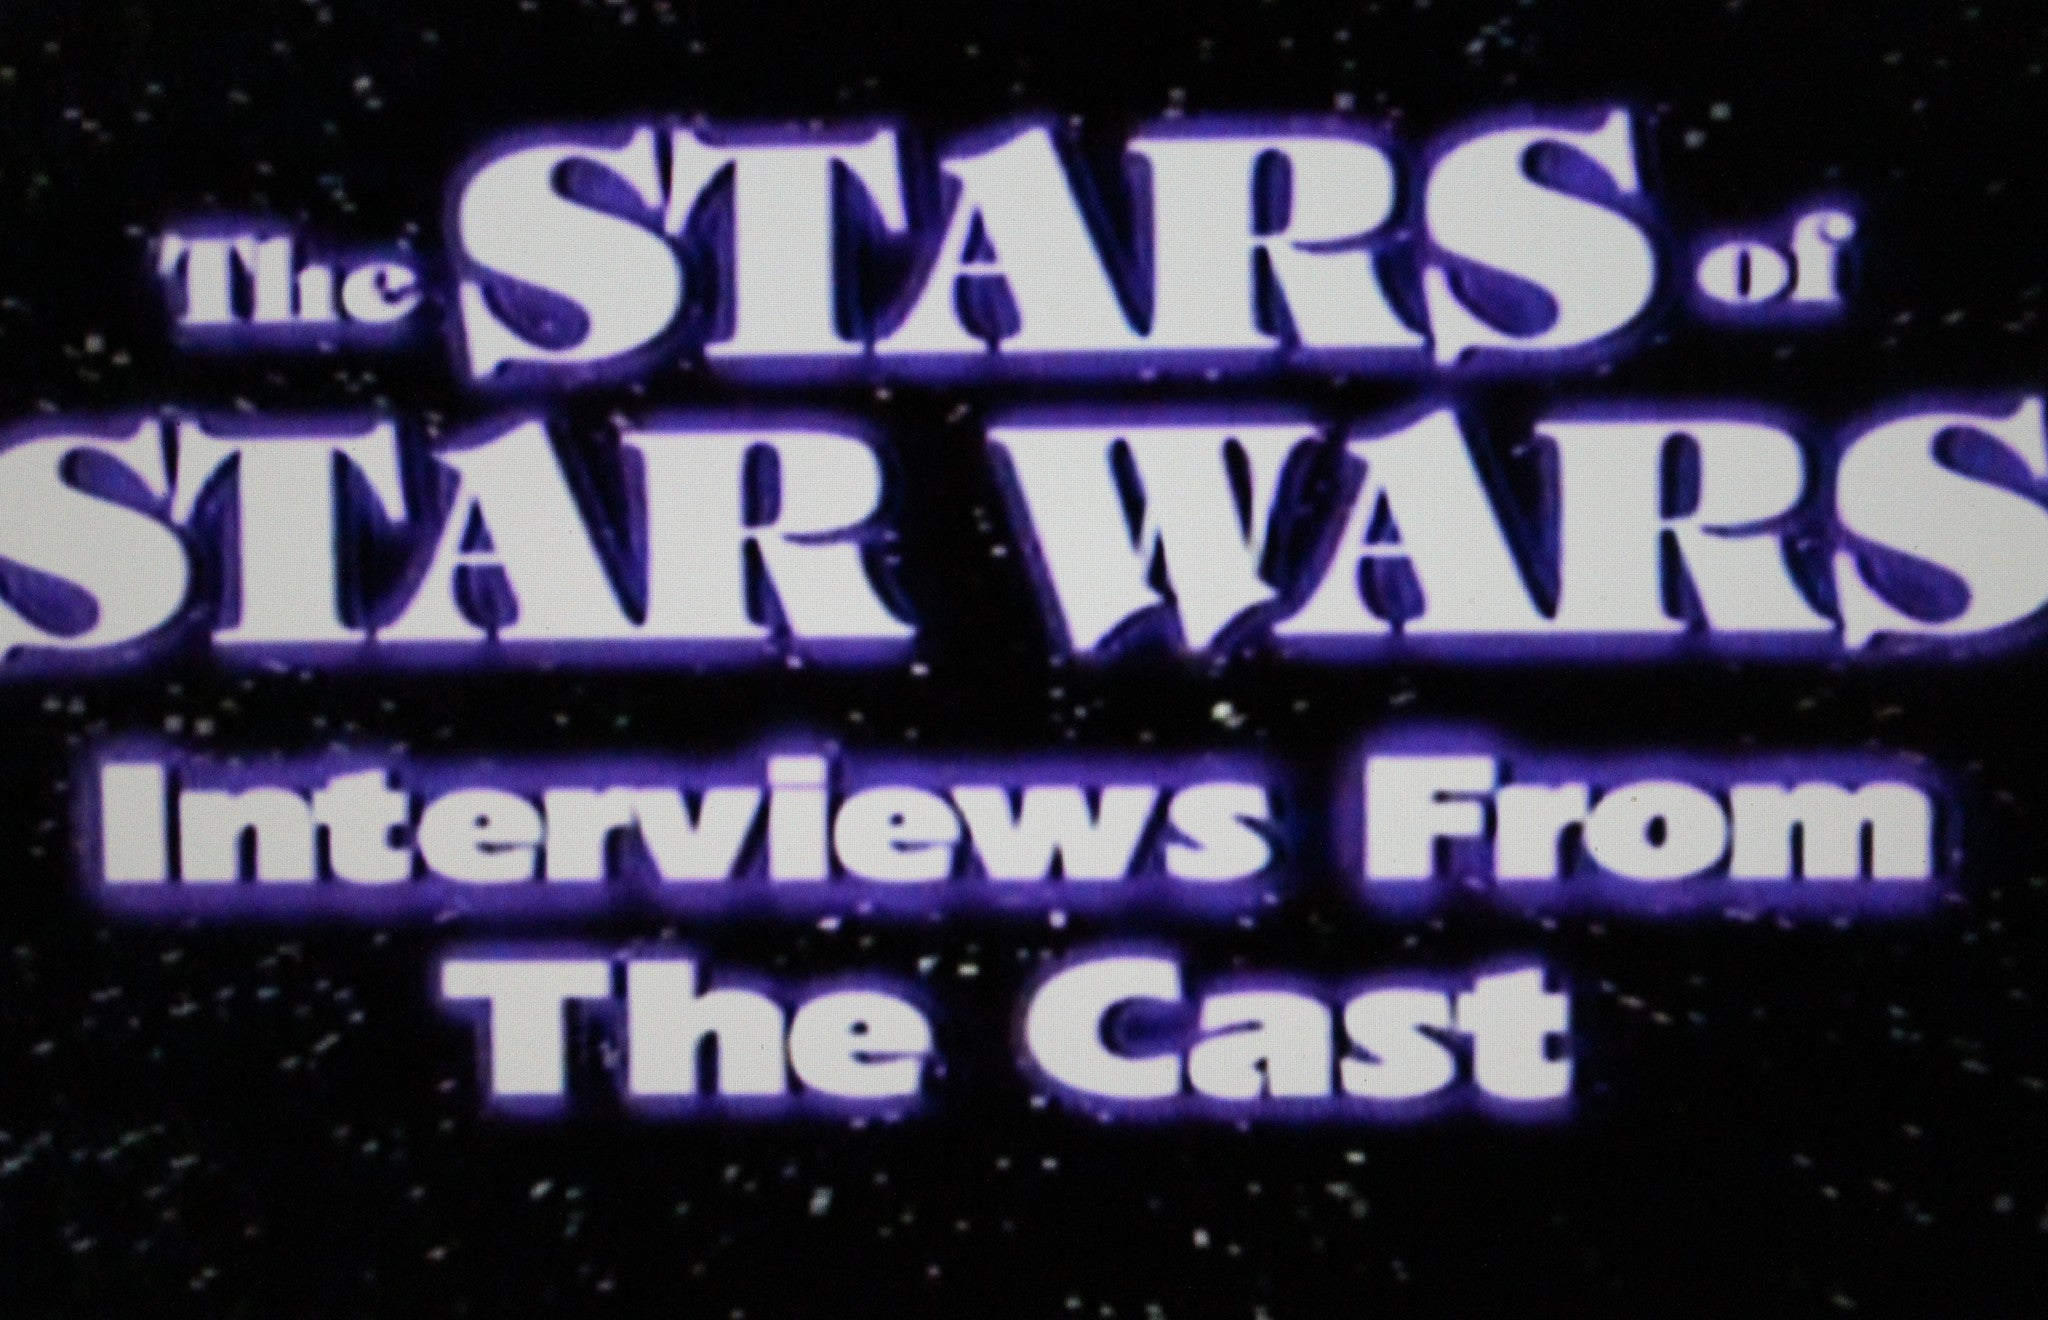 THE STARS OF STAR WARS: INTERVIEWS FROM THE CAST (1999) - Rewatch Classic TV - 1